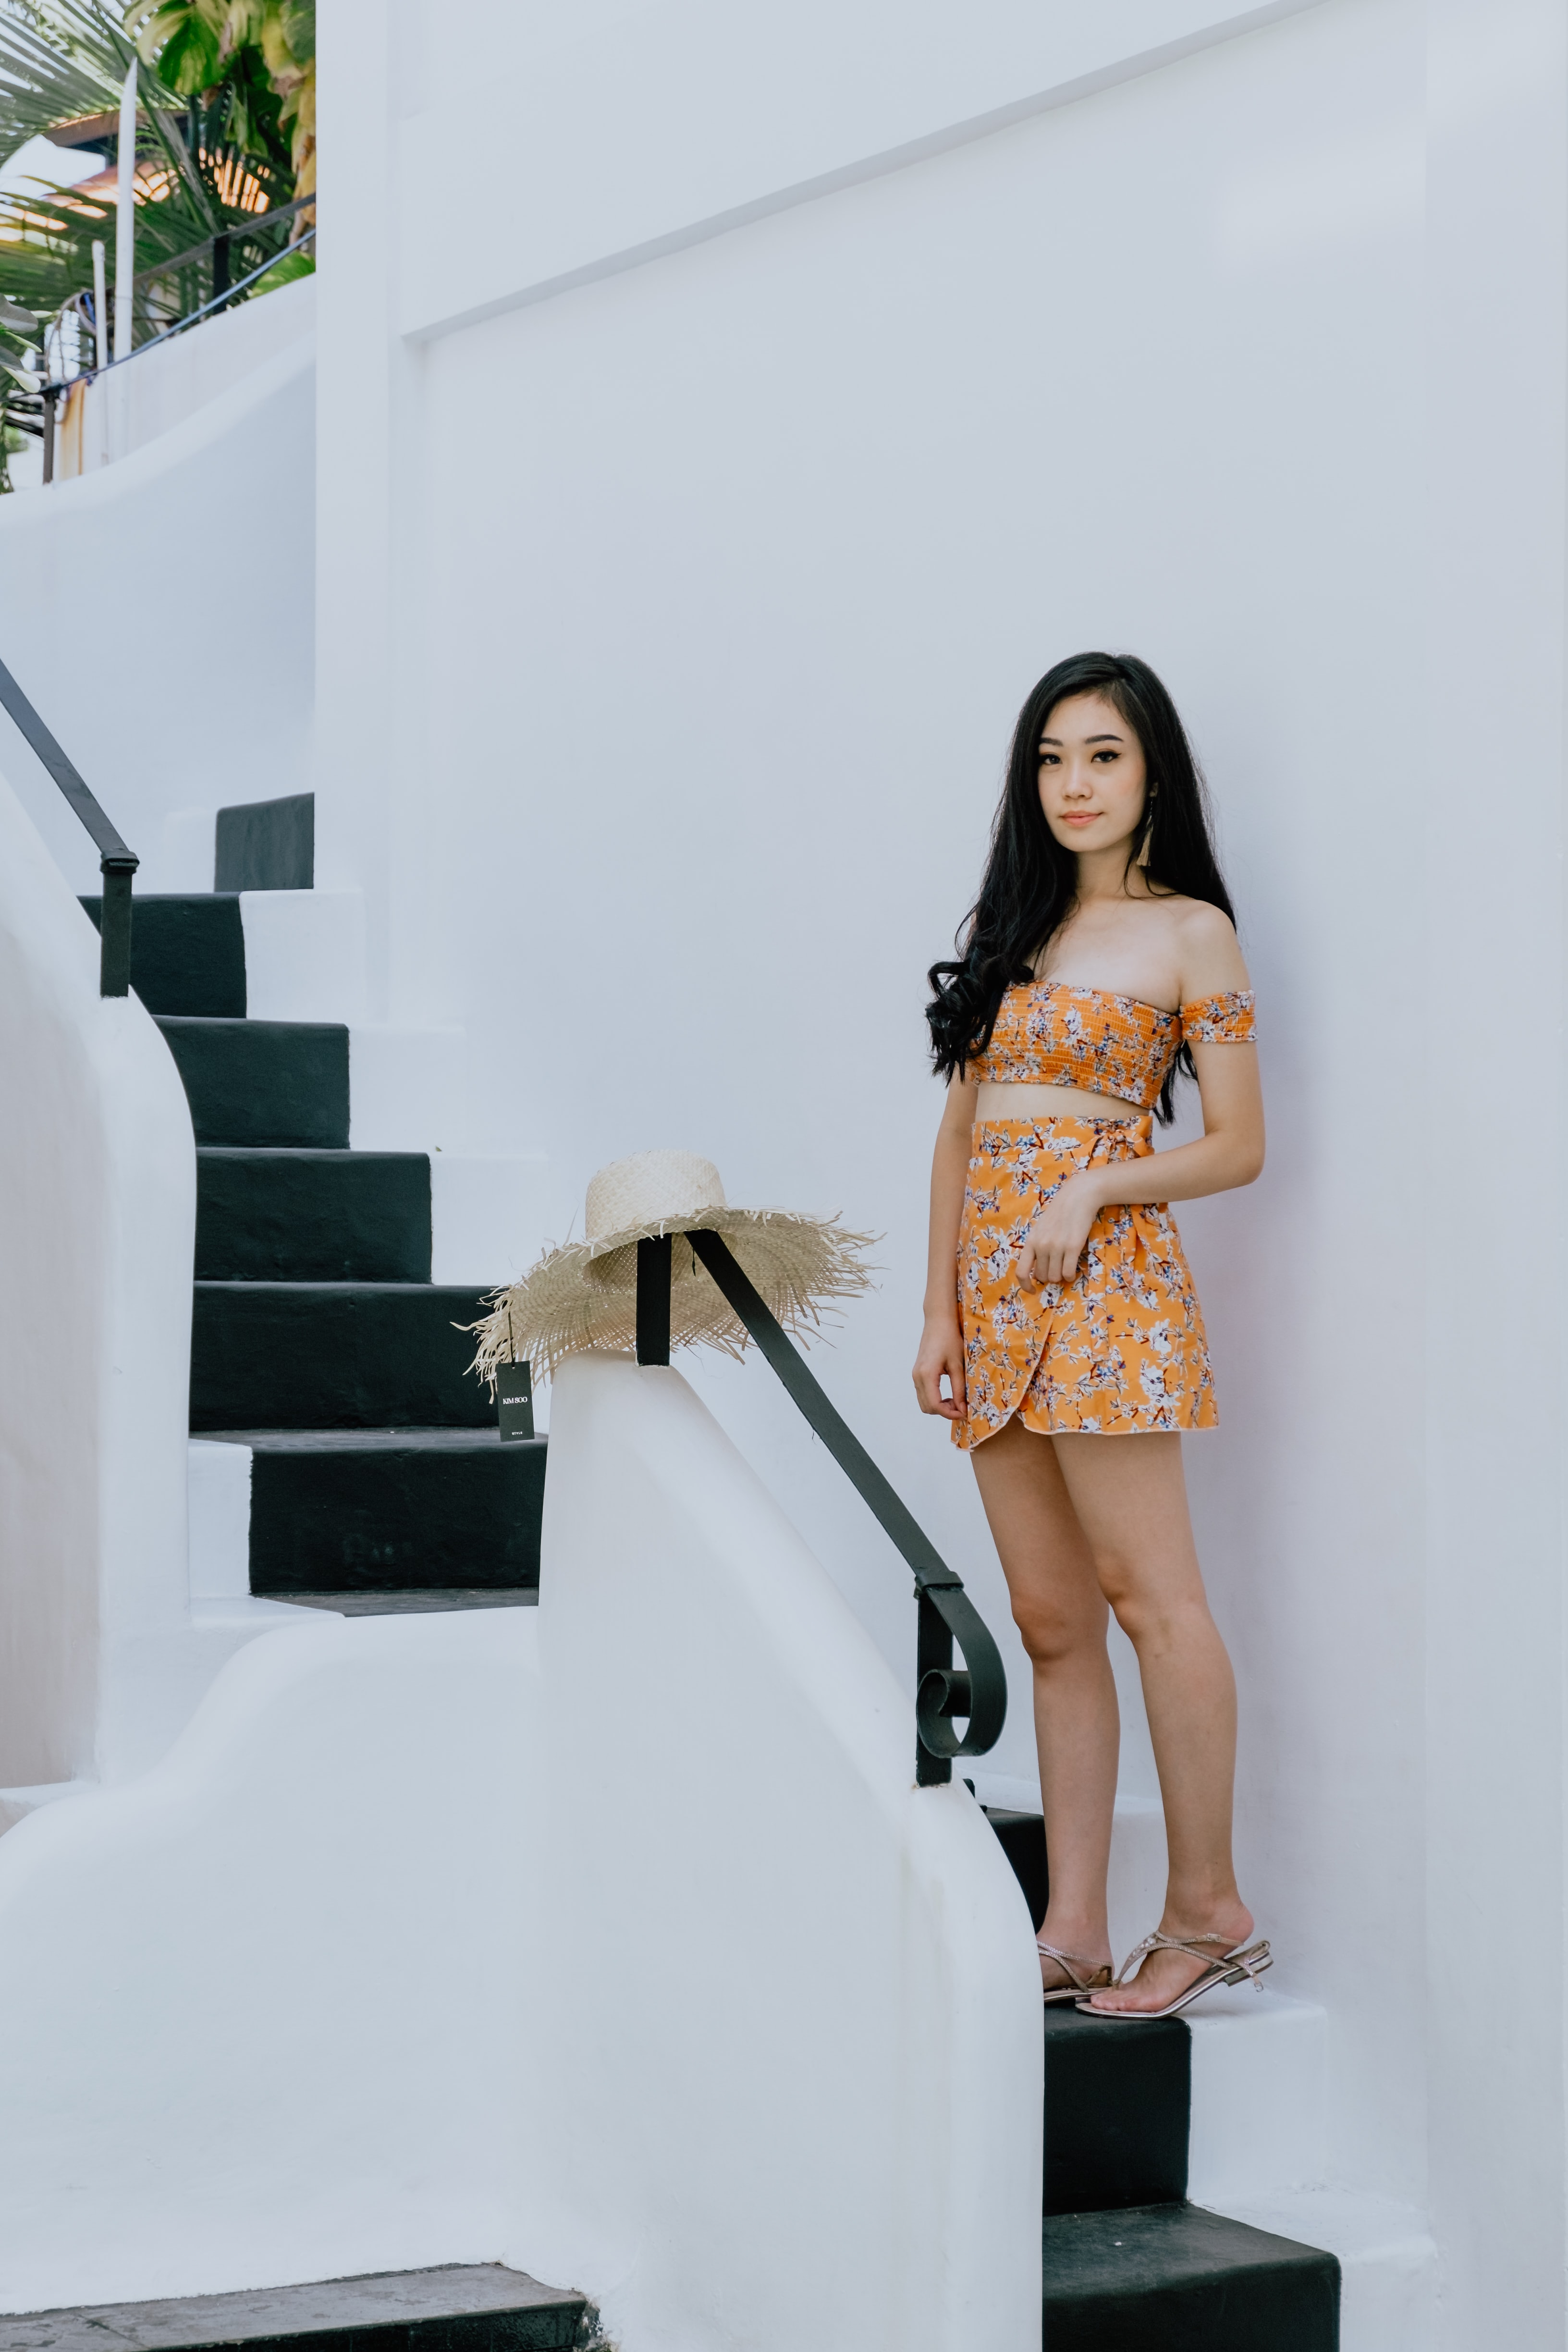 woman wearing orange floral tube top and skirt standing on stair beside wall